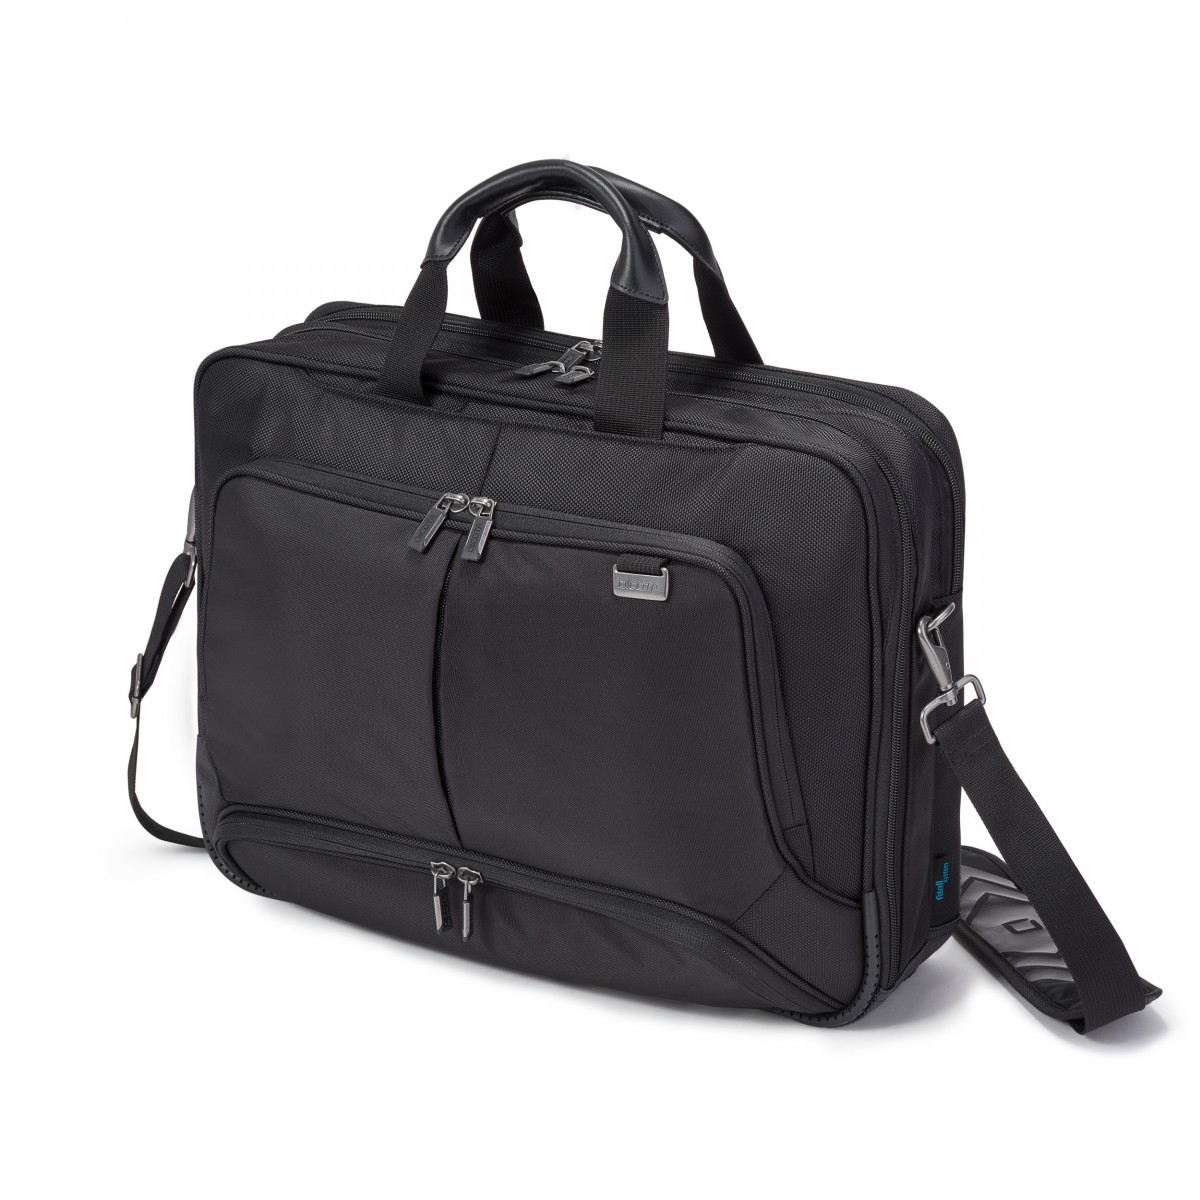 D30843 Top Traveller PRO 14-15.6 inch